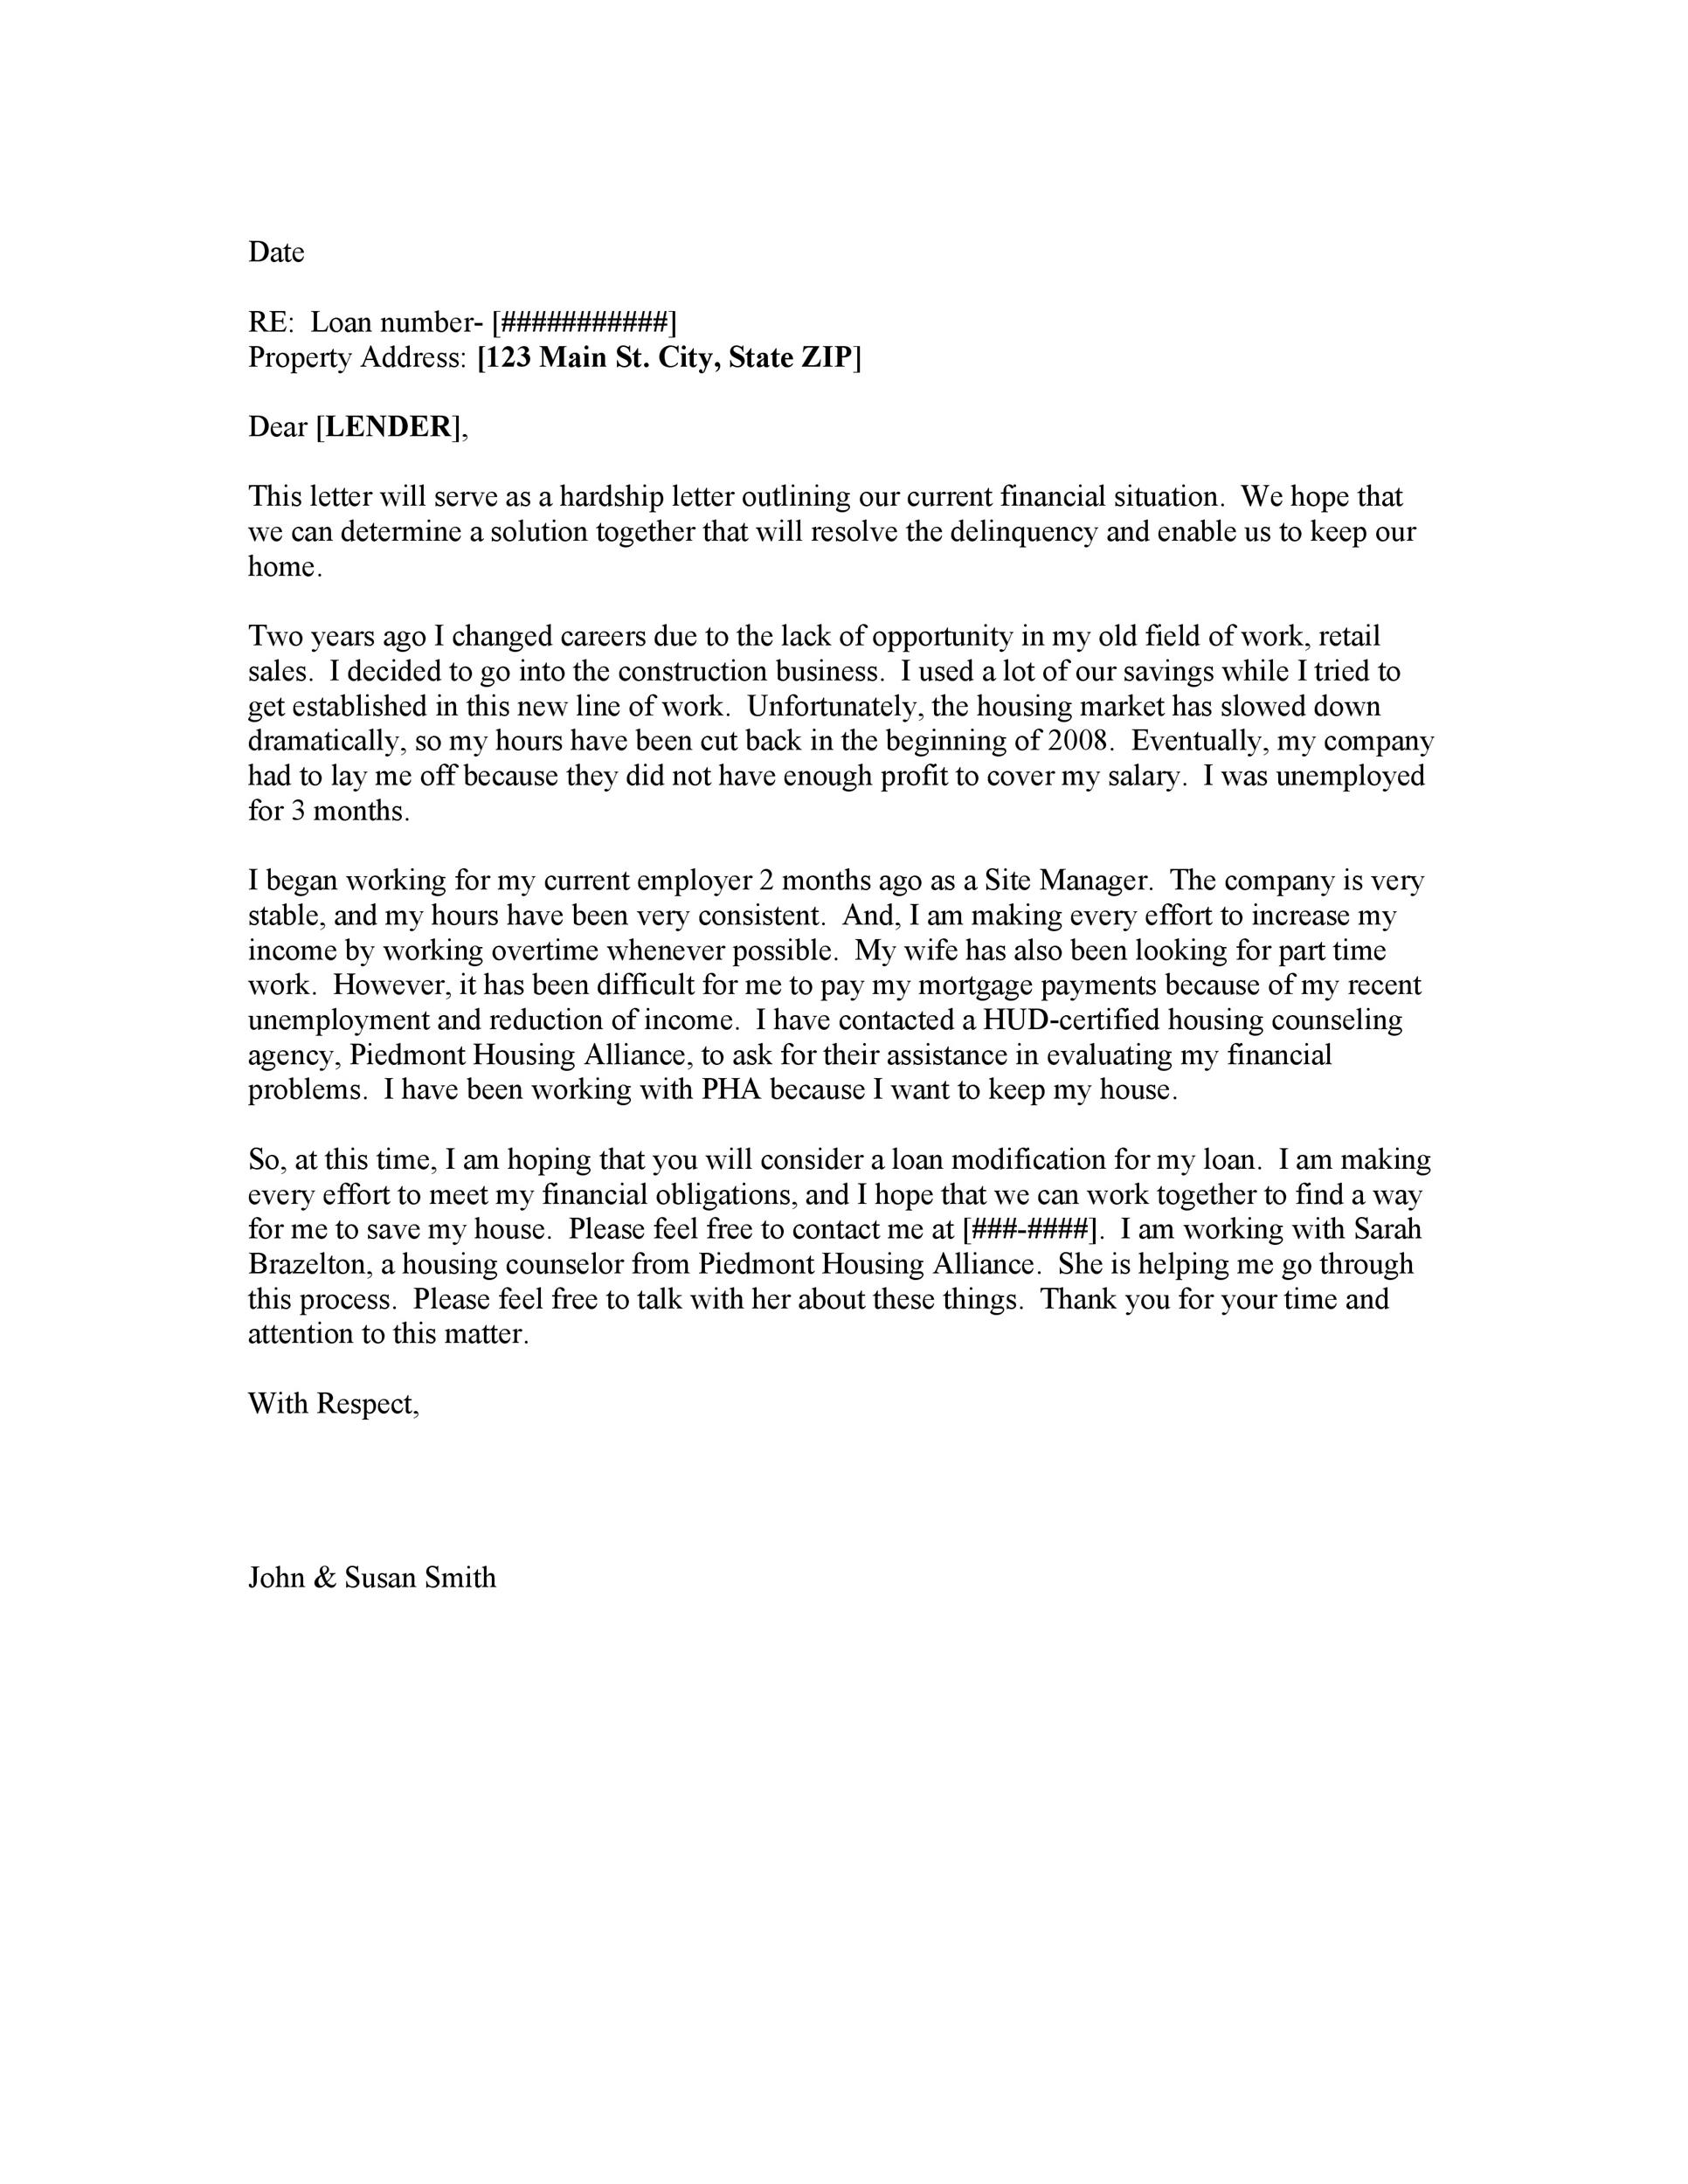 Hardship-Letter-Template-30 Template Appeal Letters For Housing on